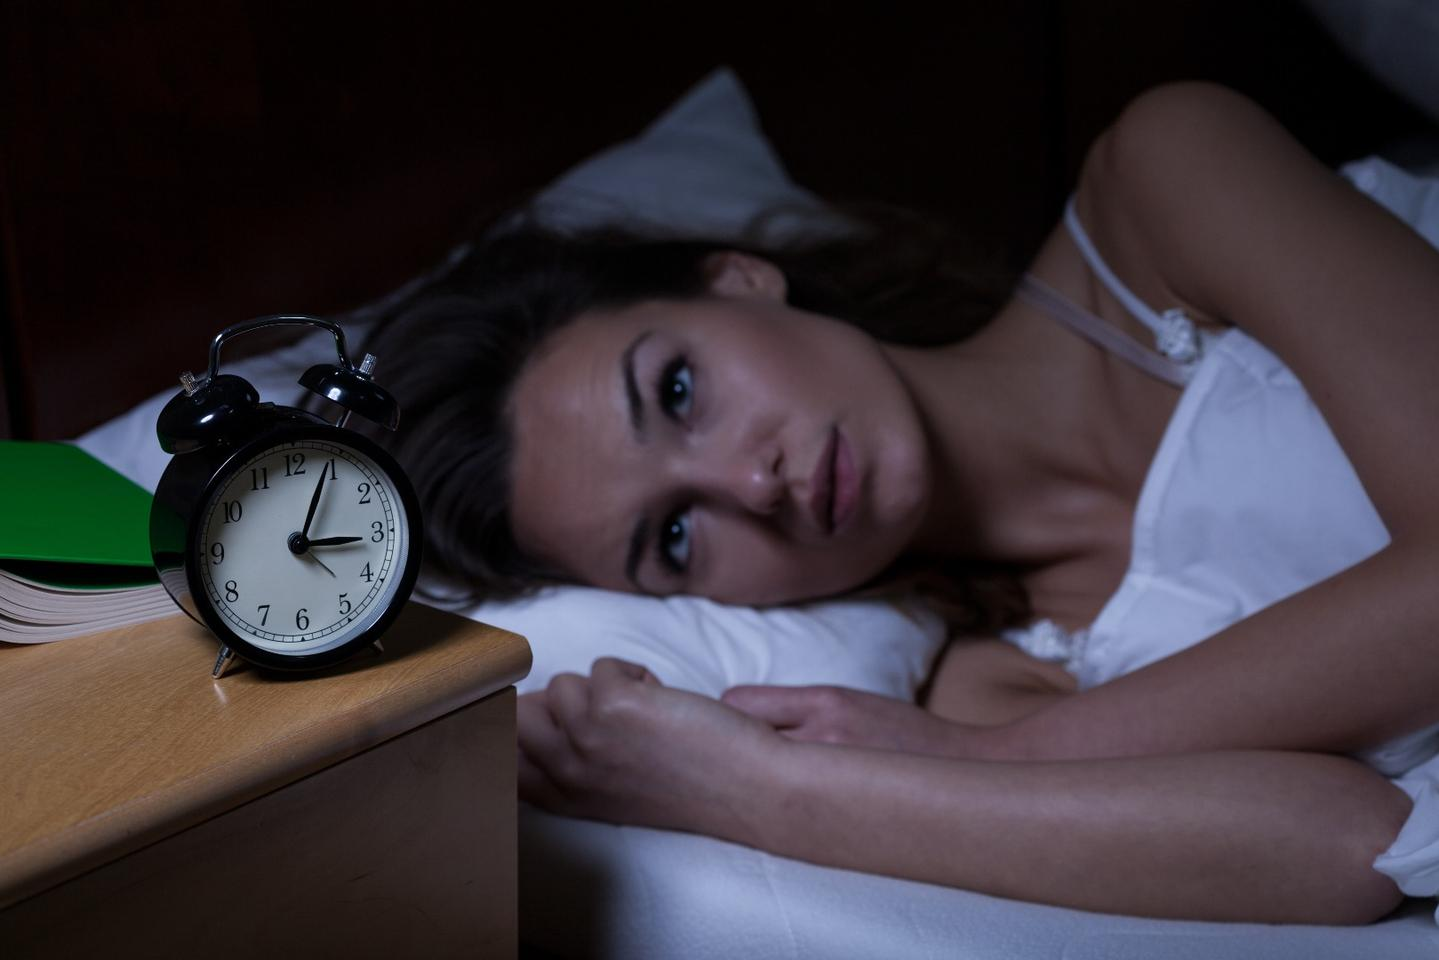 Scientists in Japan have synthesized molecules that can modify your circadian rhythm, opening the door for potential treatments for sleep disorders and disruptions caused by jet lag or shift work